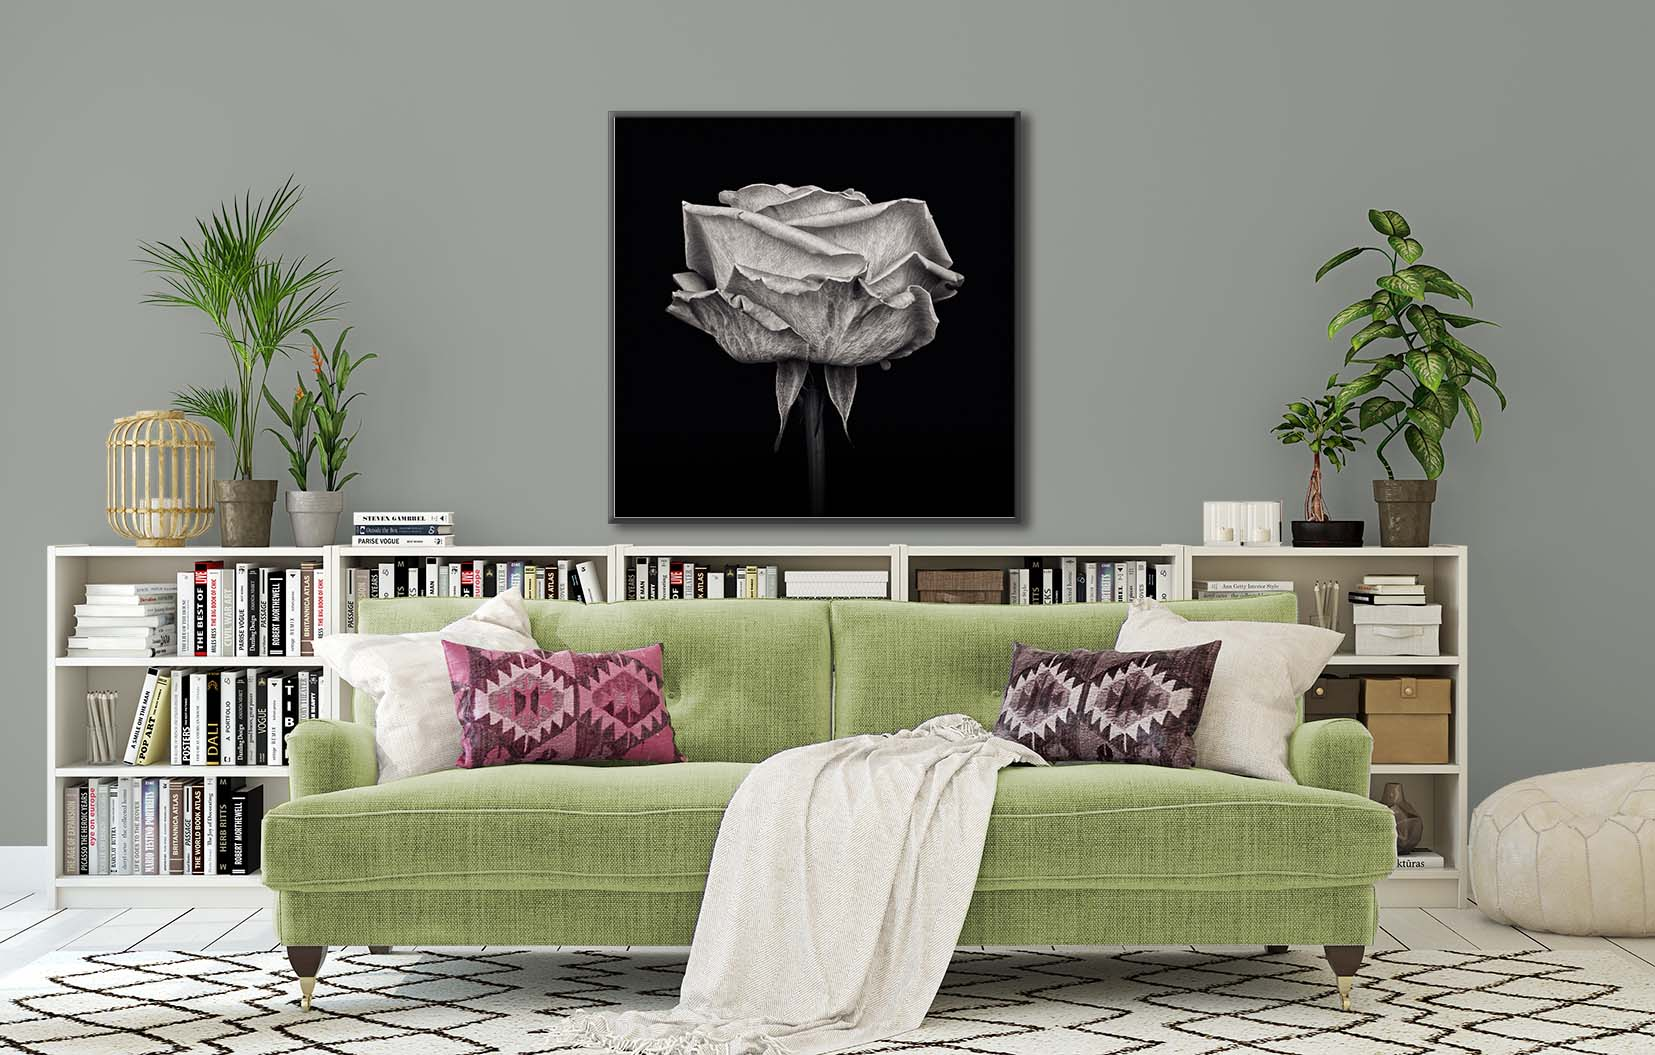 Black and white print of an English rose, framed and on the wall. Fine art floral photograph by Paul Coghlin FBIPP